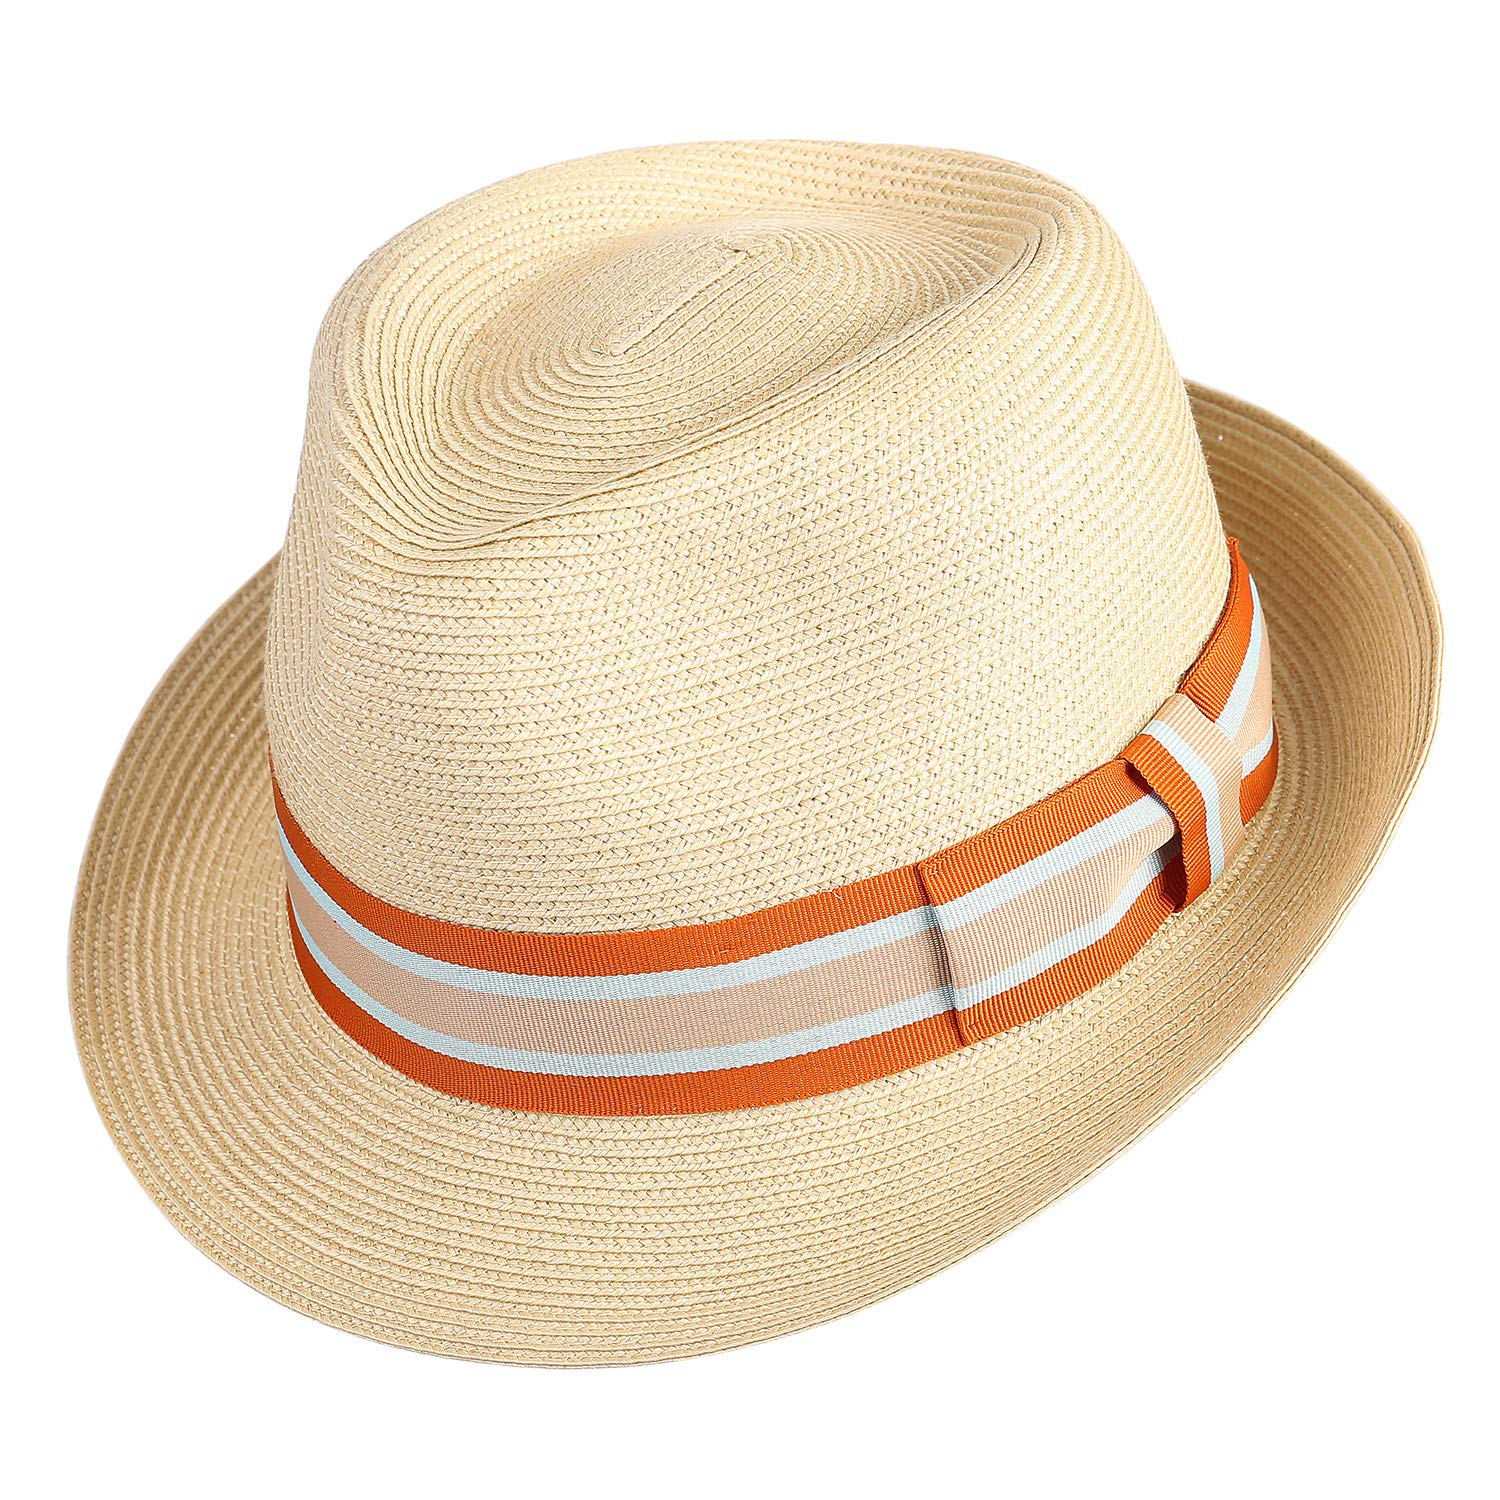 584964615deb05 Janetshats Straw Fedora Unisex Summer Sun Hats Panama Short Brim Hat Men  Women at Amazon Men's Clothing store: